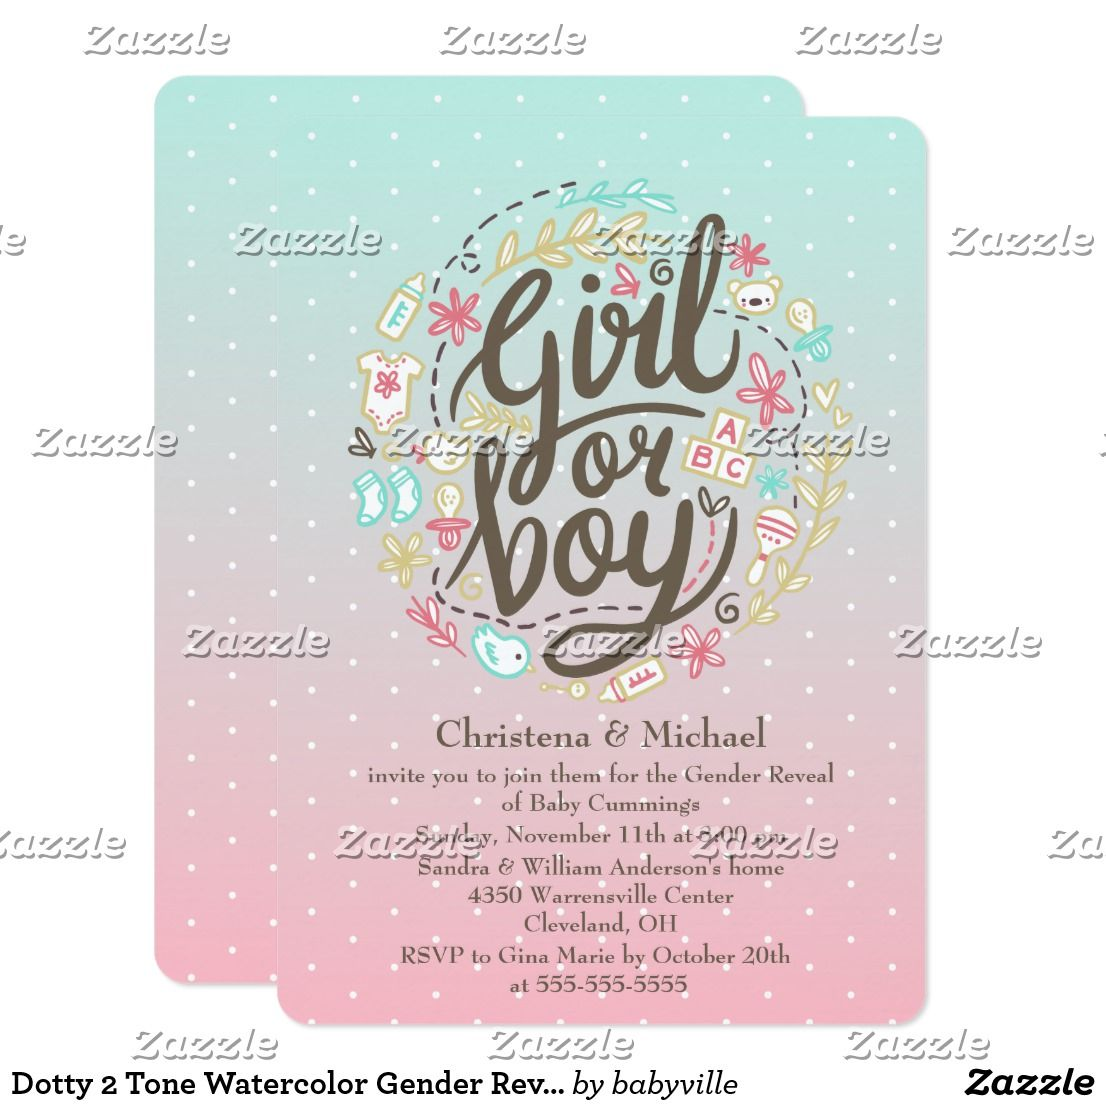 Dotty 2 Tone Watercolor Gender Reveal Invitation Zazzle Com